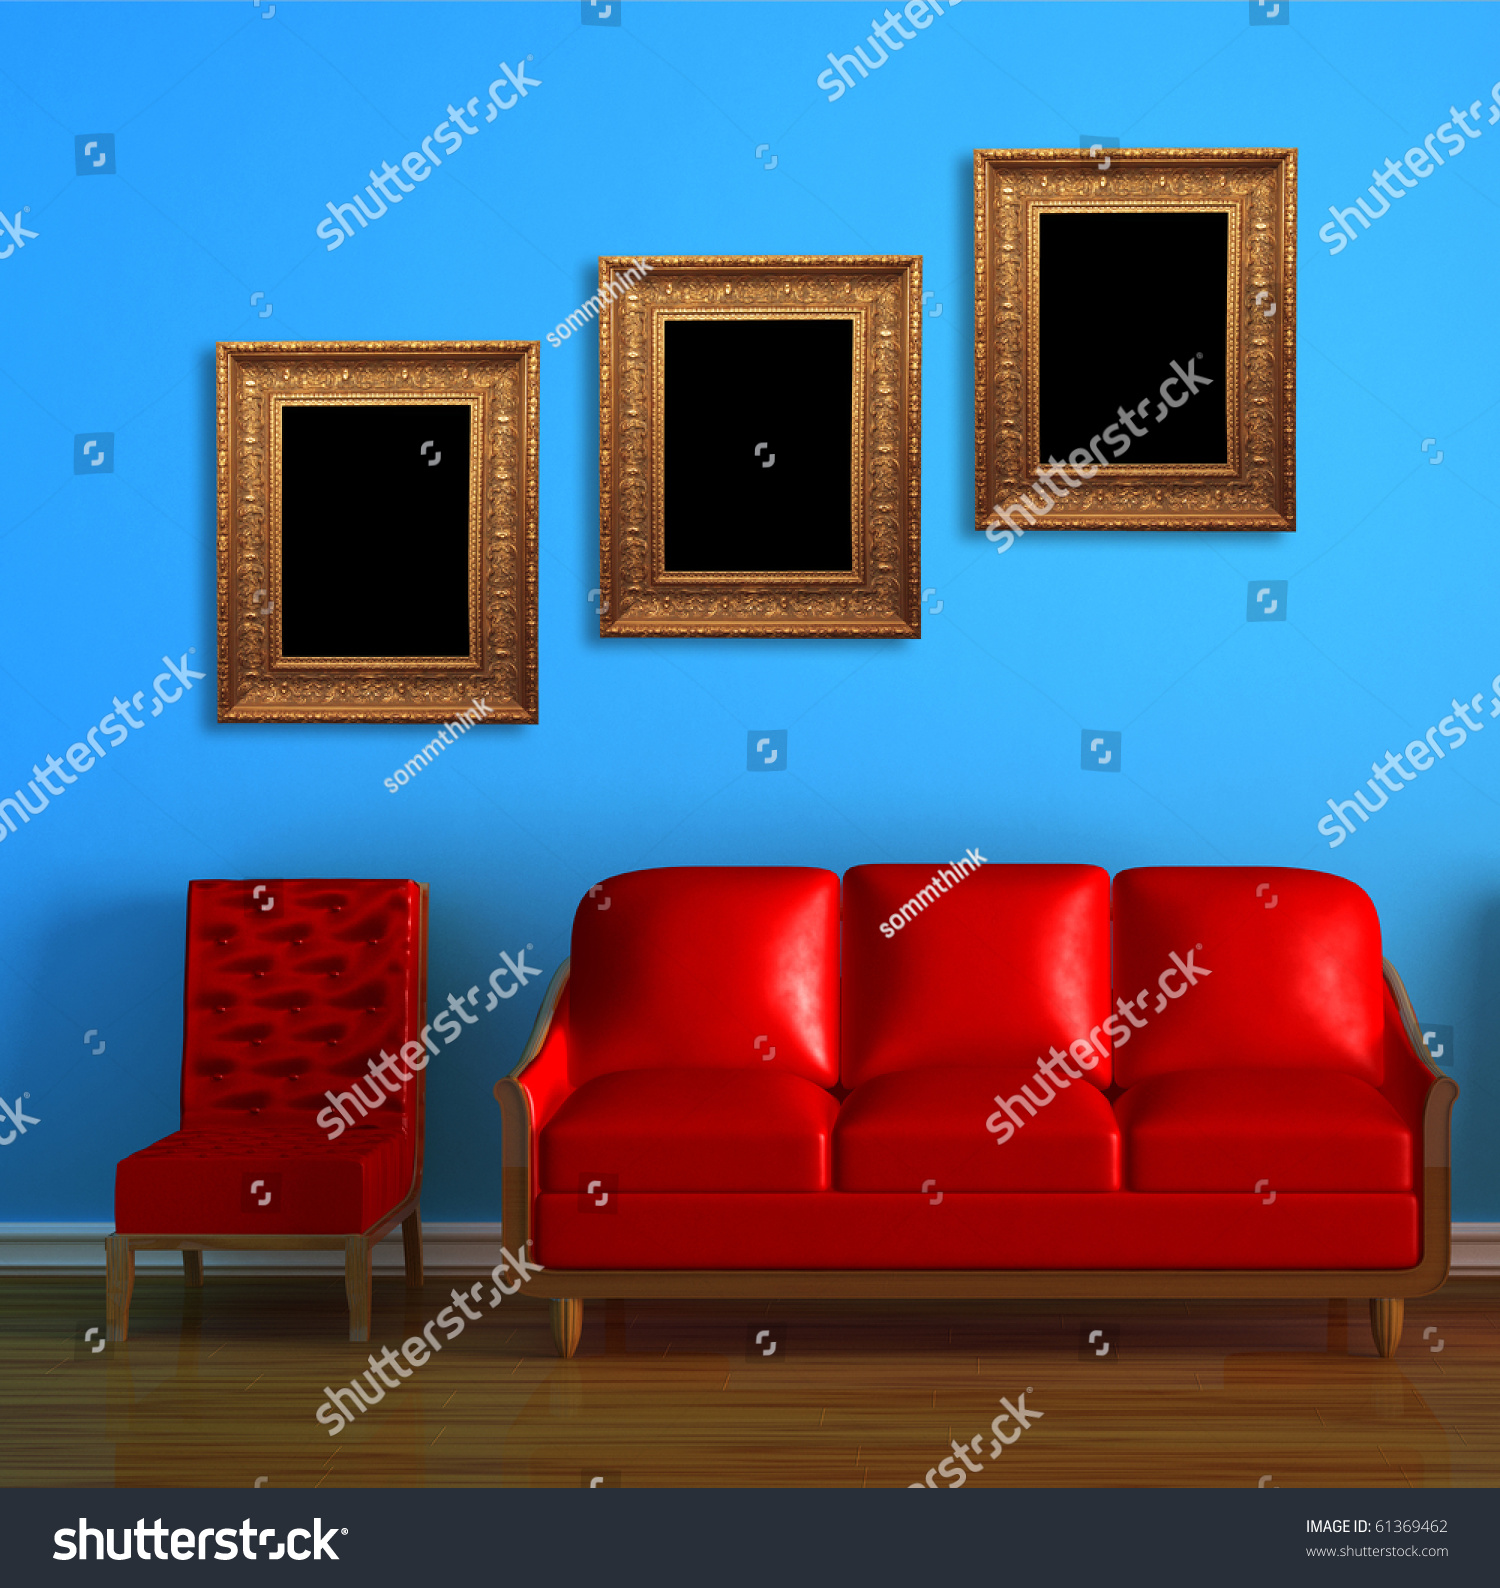 Red Couch Char Modern Frames Blue Stock Illustration